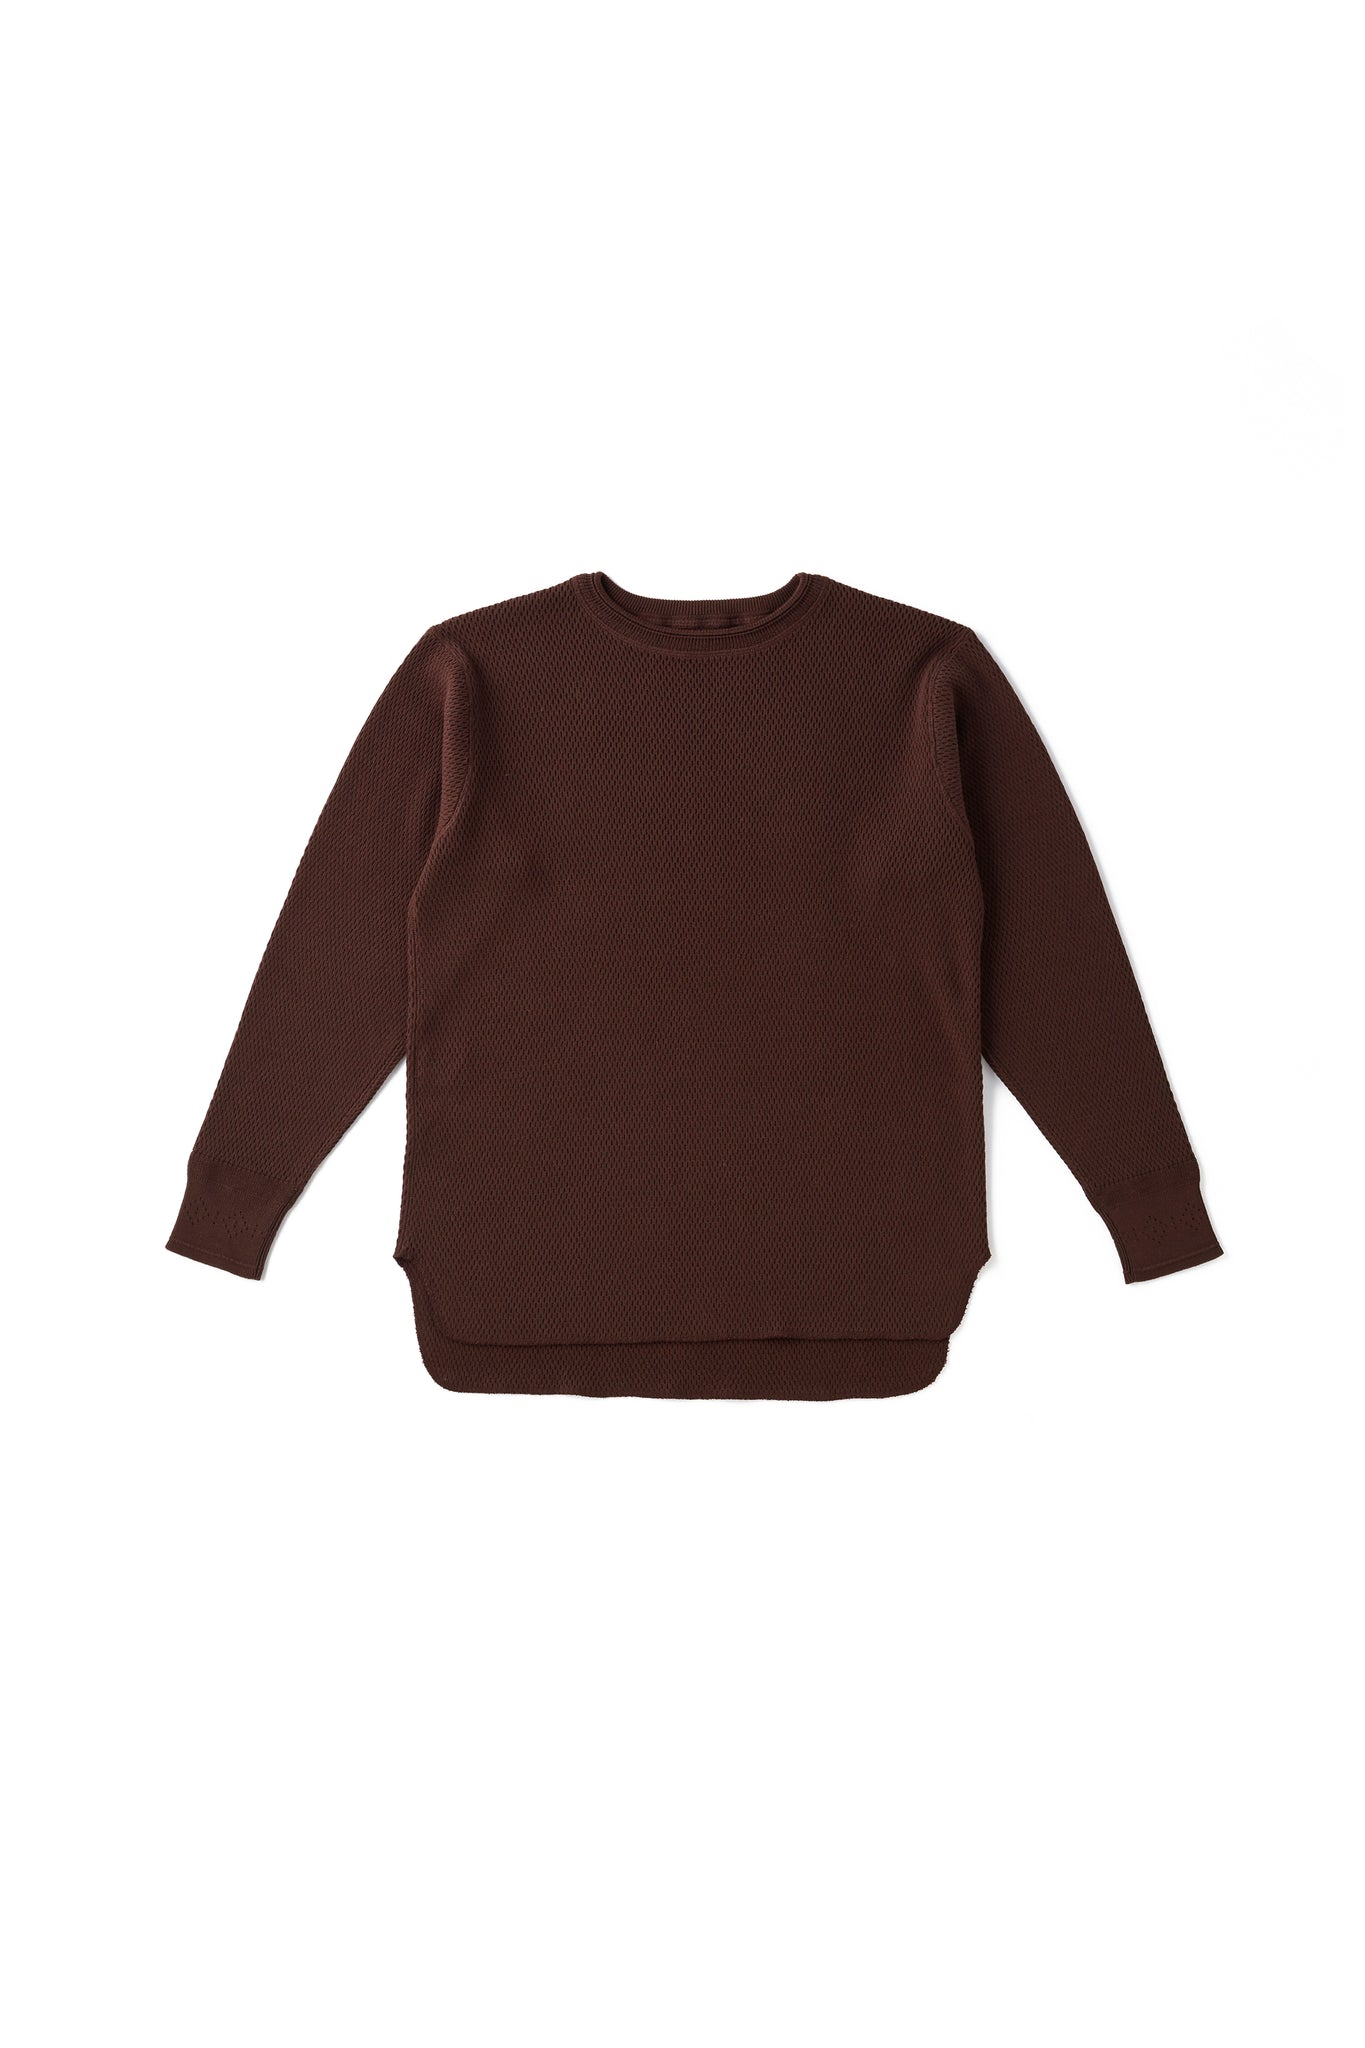 HARD TWIST HONEYCOMB WUFFLE CREW-NECK - 202OJ-KN07